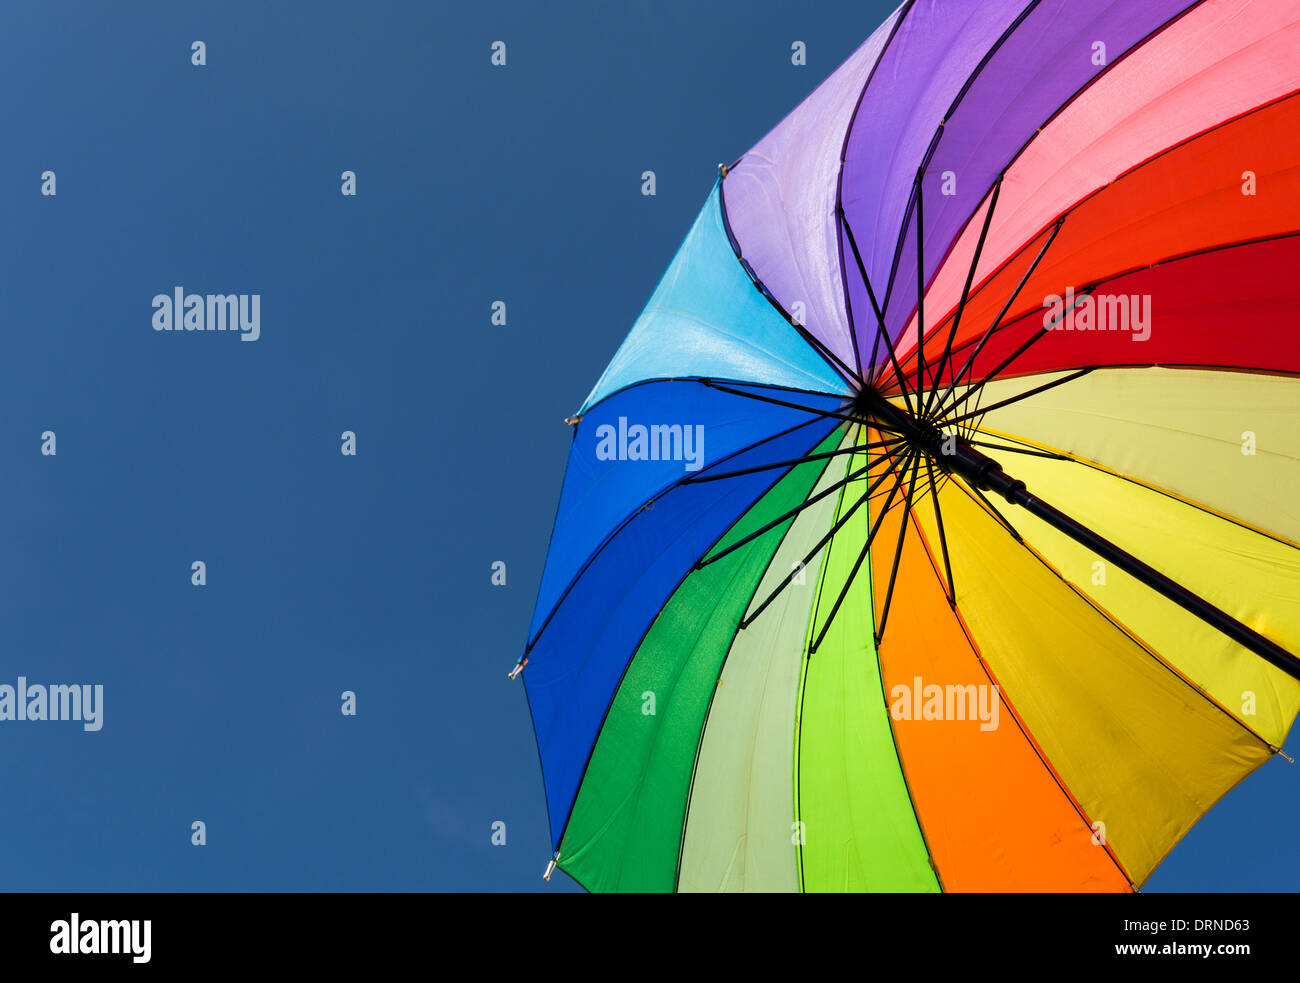 Rainbow coloured Umbrella against blue sky - Stock Image